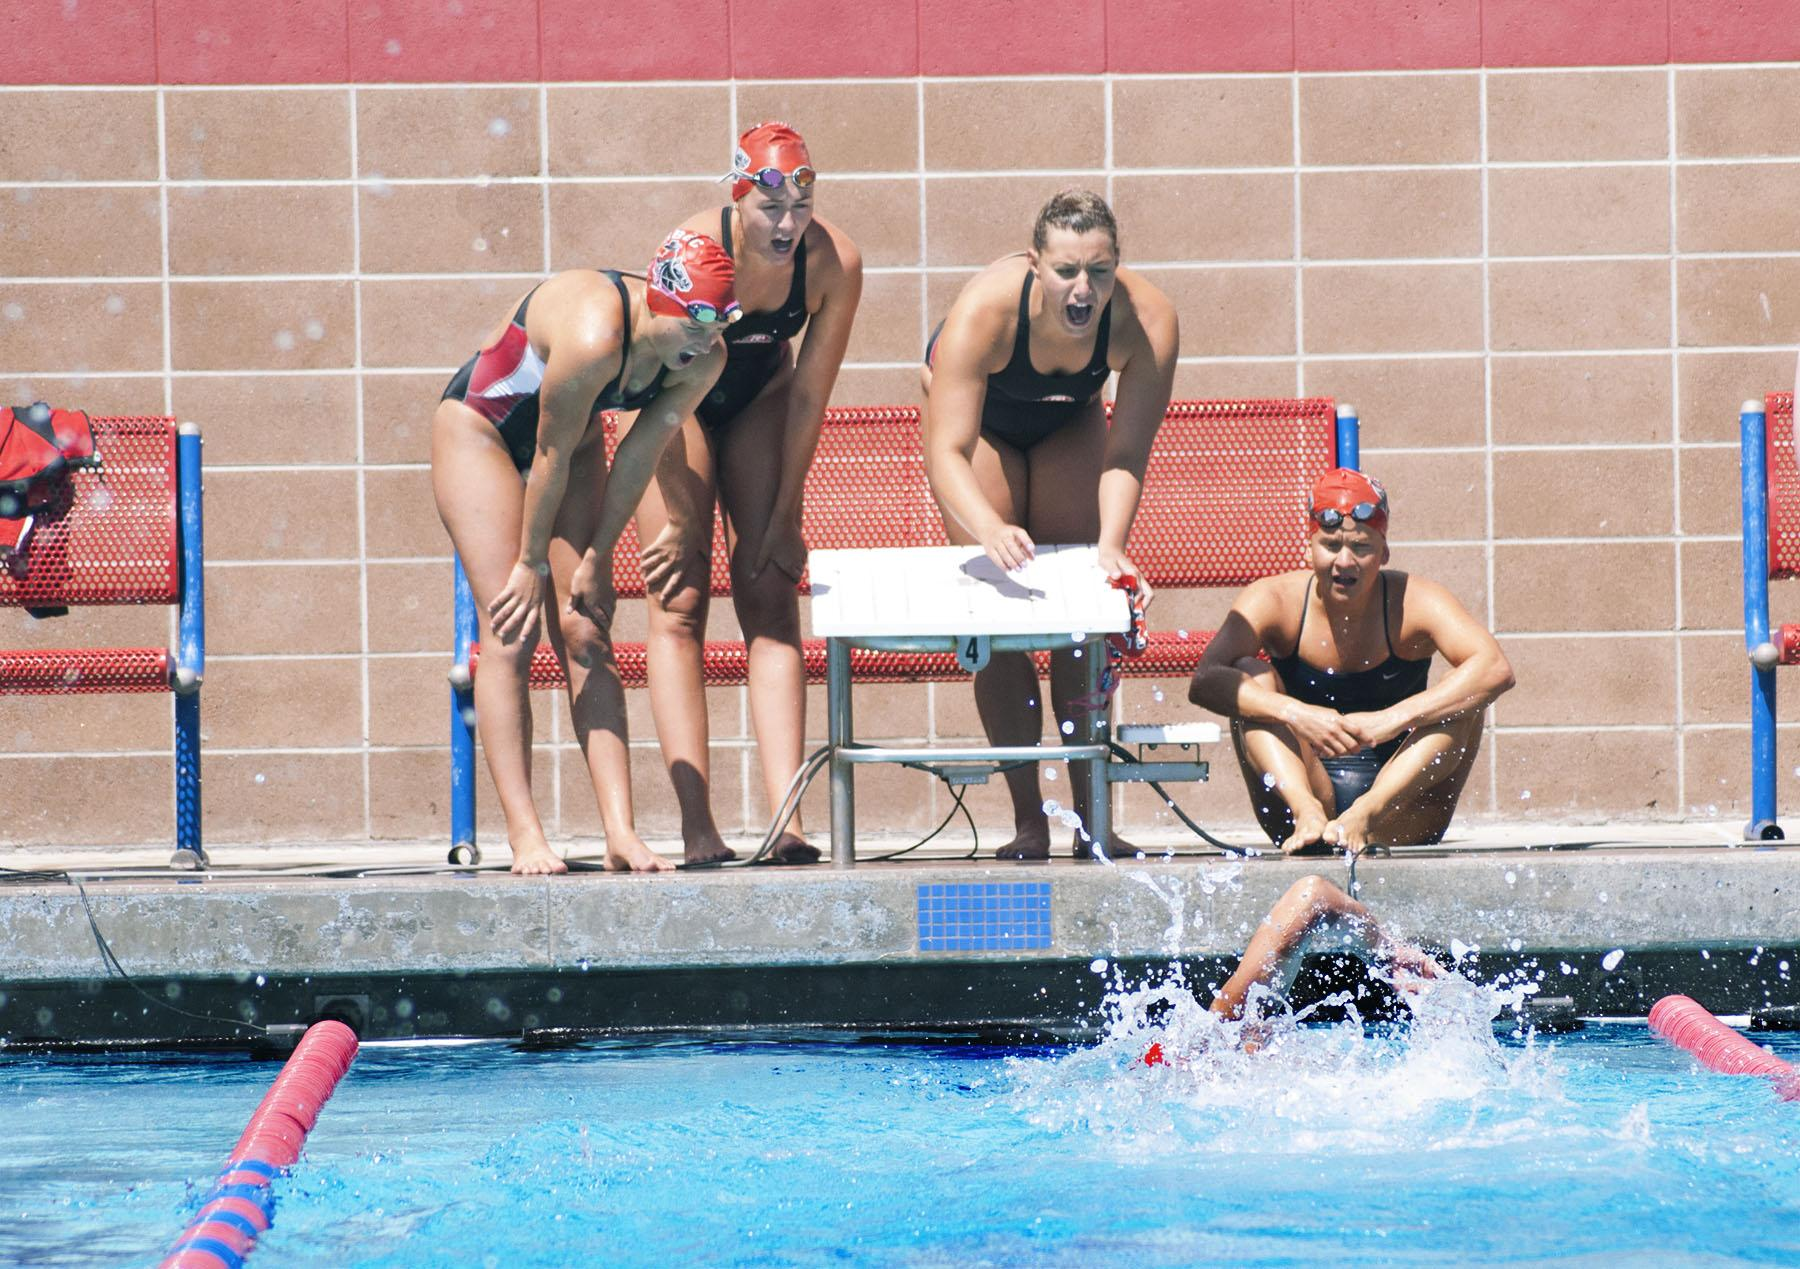 City College swimmer, Sarah Westmorelan, swims as anchor in the 4x100 yard freestyle relay while teammates (from left), Elise Hazel, Madelyn Brooks, Autumn Lovett and Katherine